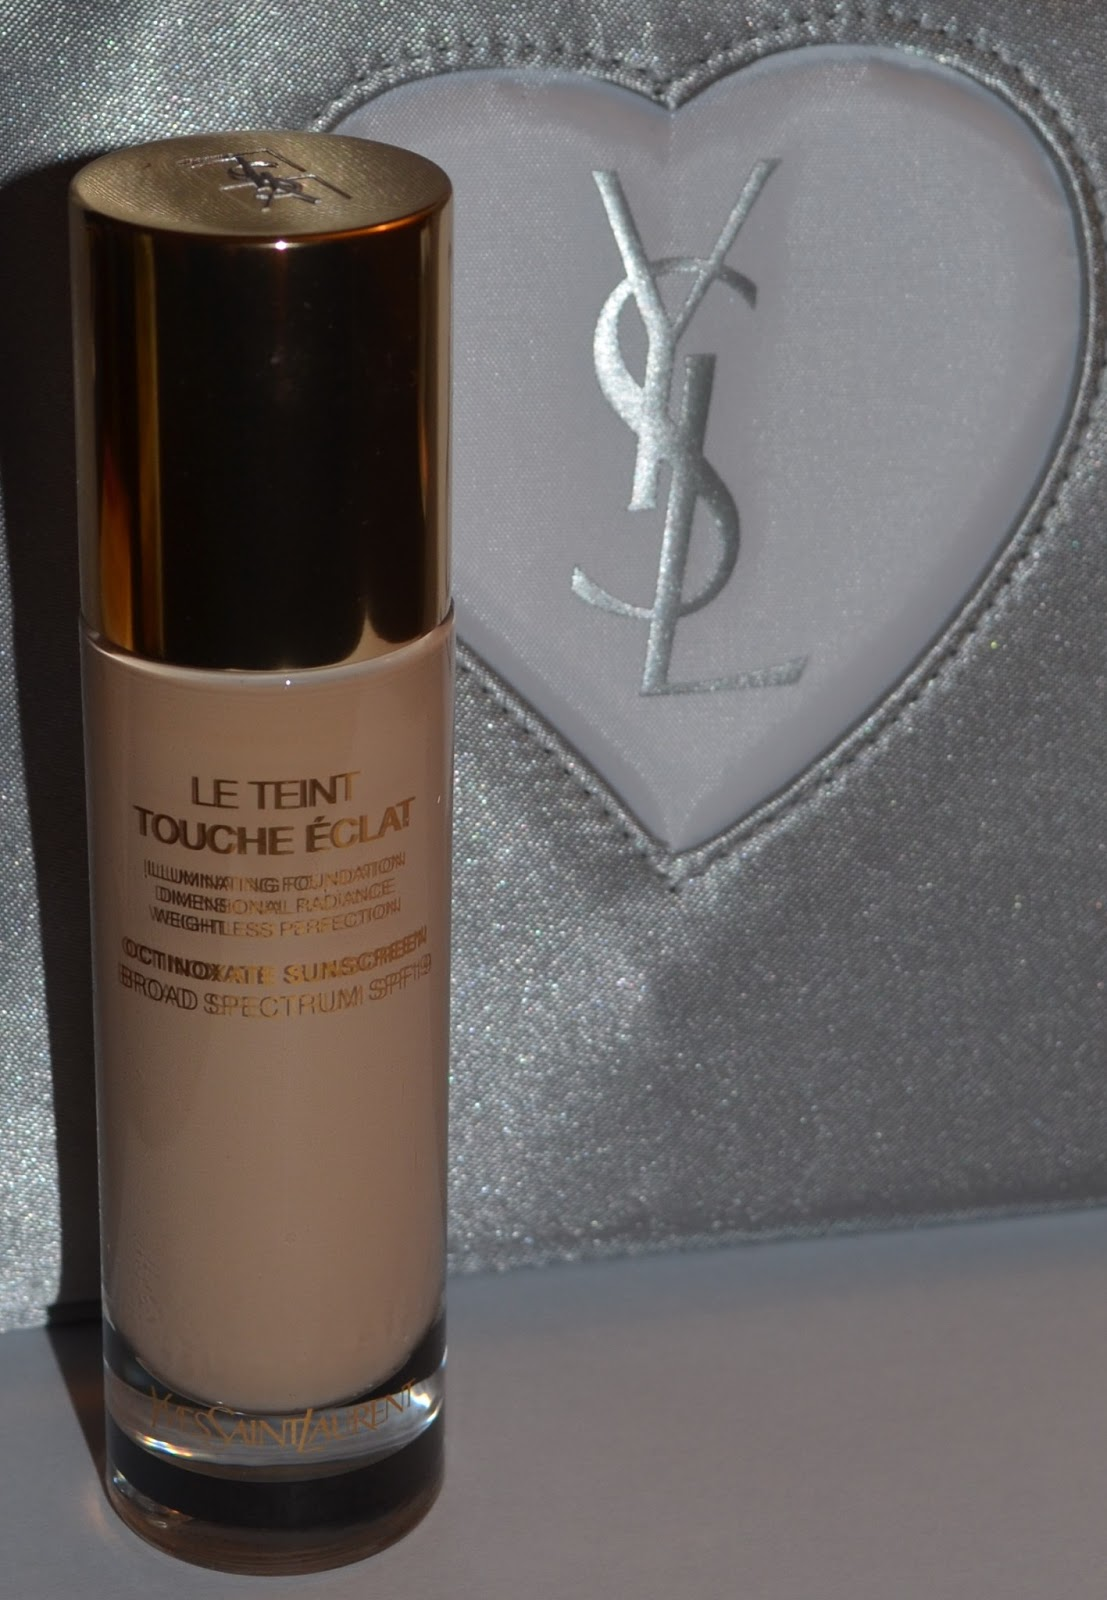 YSL Le Teint Touche Eclat Illuminating Foundation Review - My Beauty